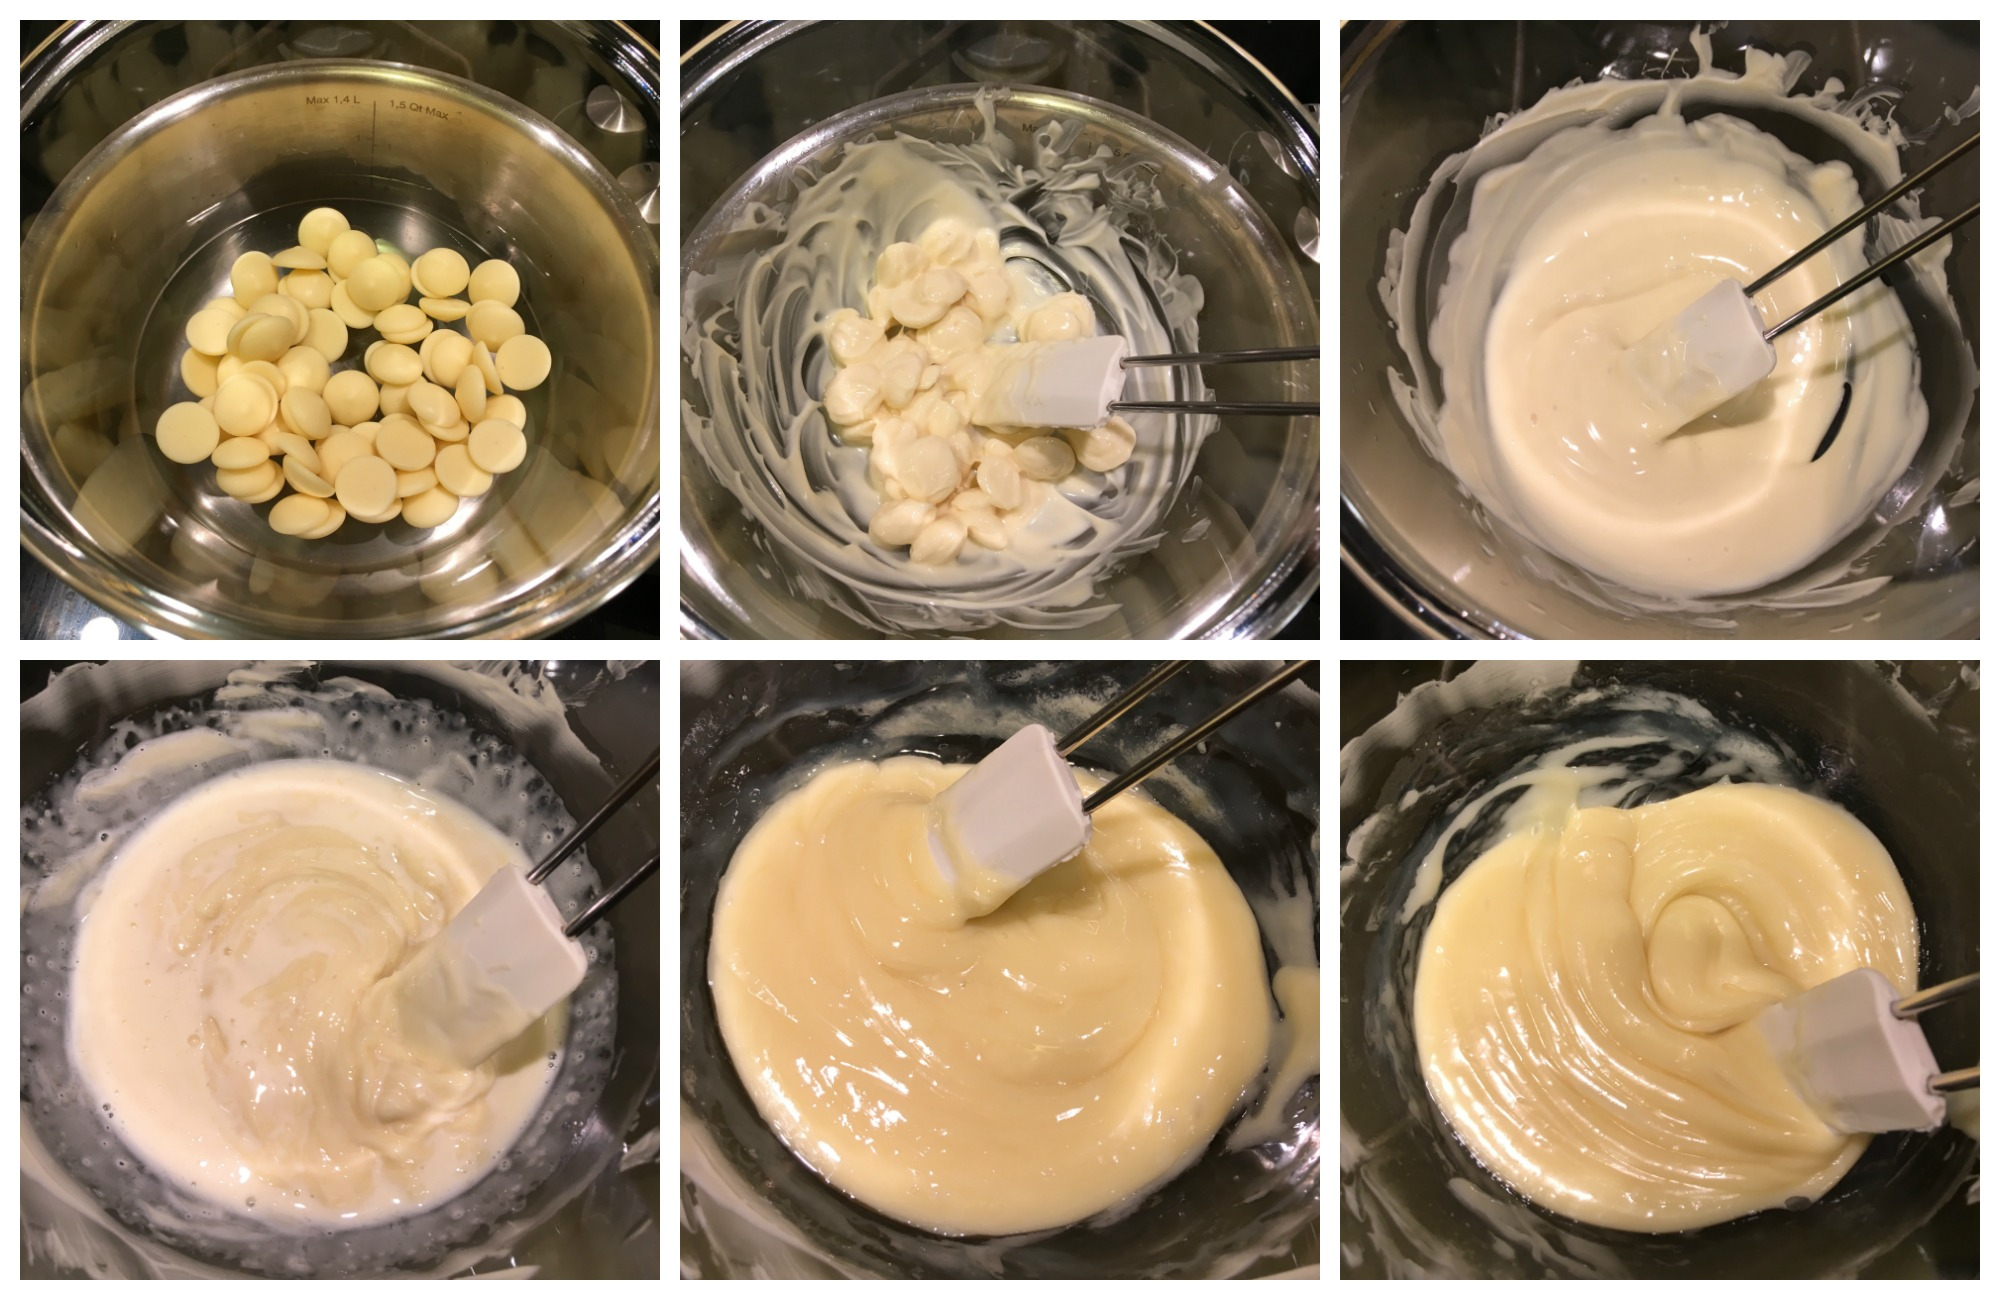 Pistachio Blueberry White Chocolate Truffles in the making using method 2